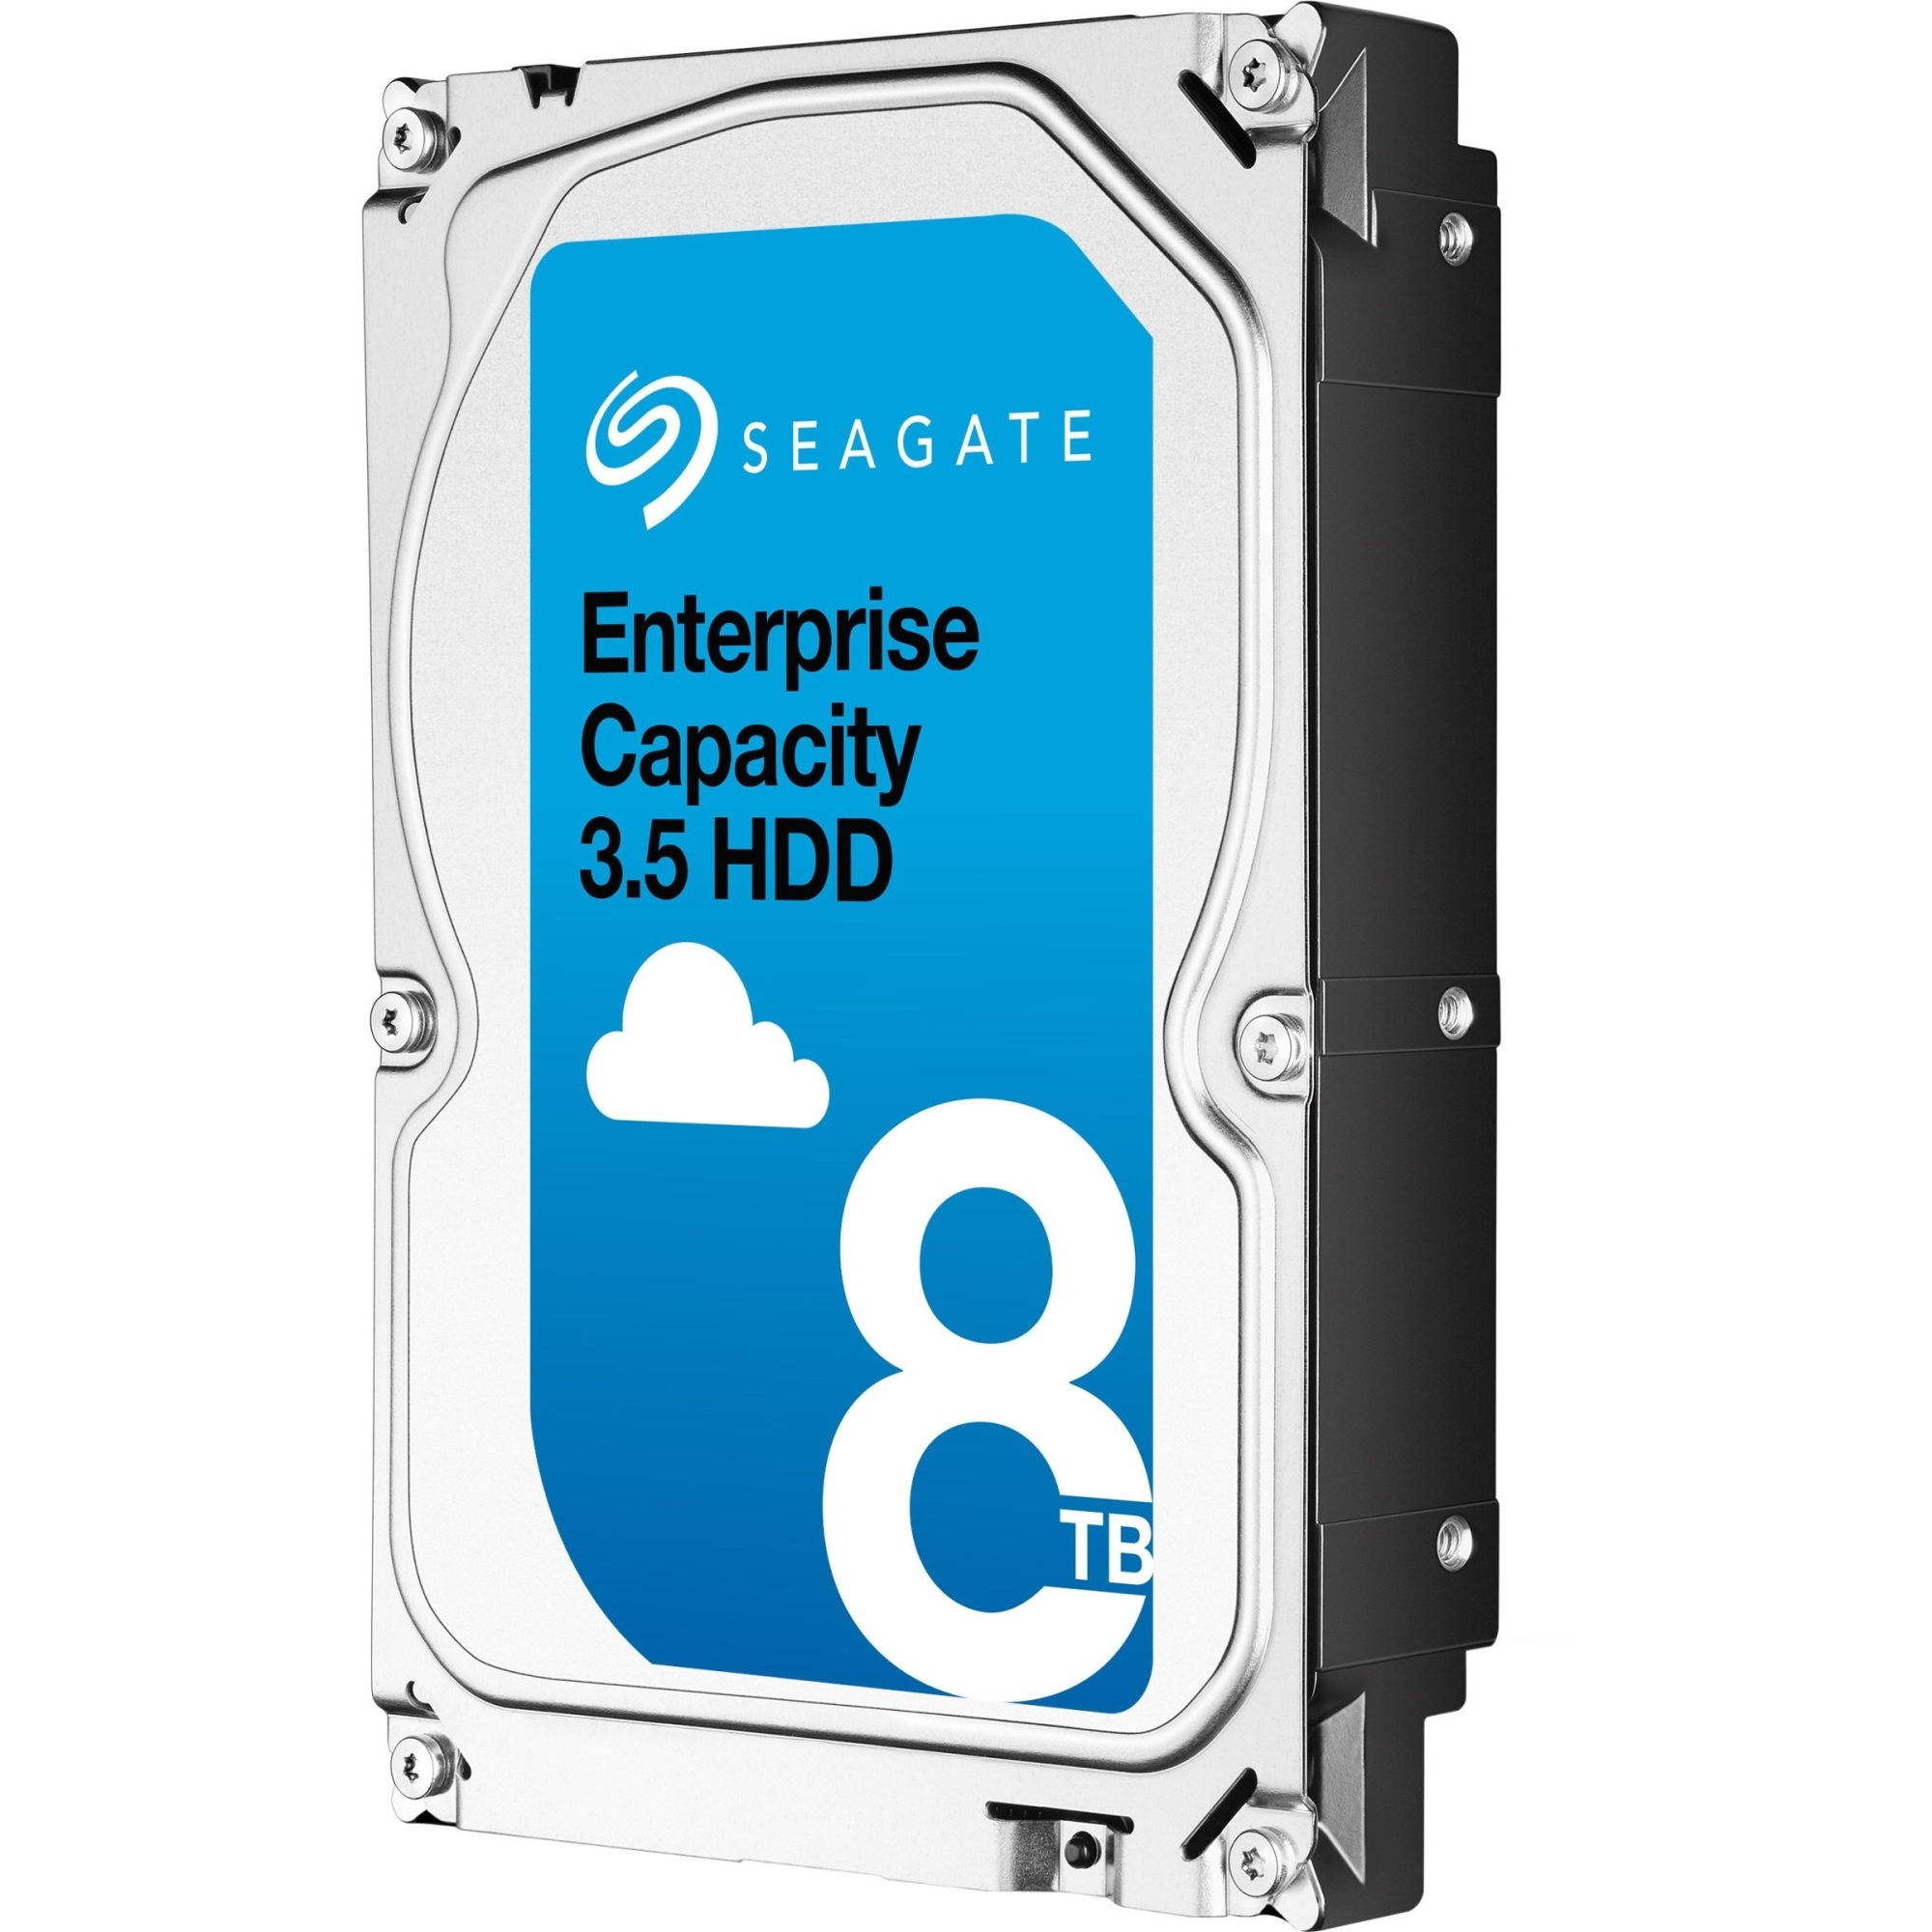 Enterprise Capacity 3.5 HDD - Hard drive - encrypted - 8 TB - internal - 3.5 inch - SATA 6Gb/s - 7200 rpm - buffer: 256 MB - Self-Encrypting Drive (SED)